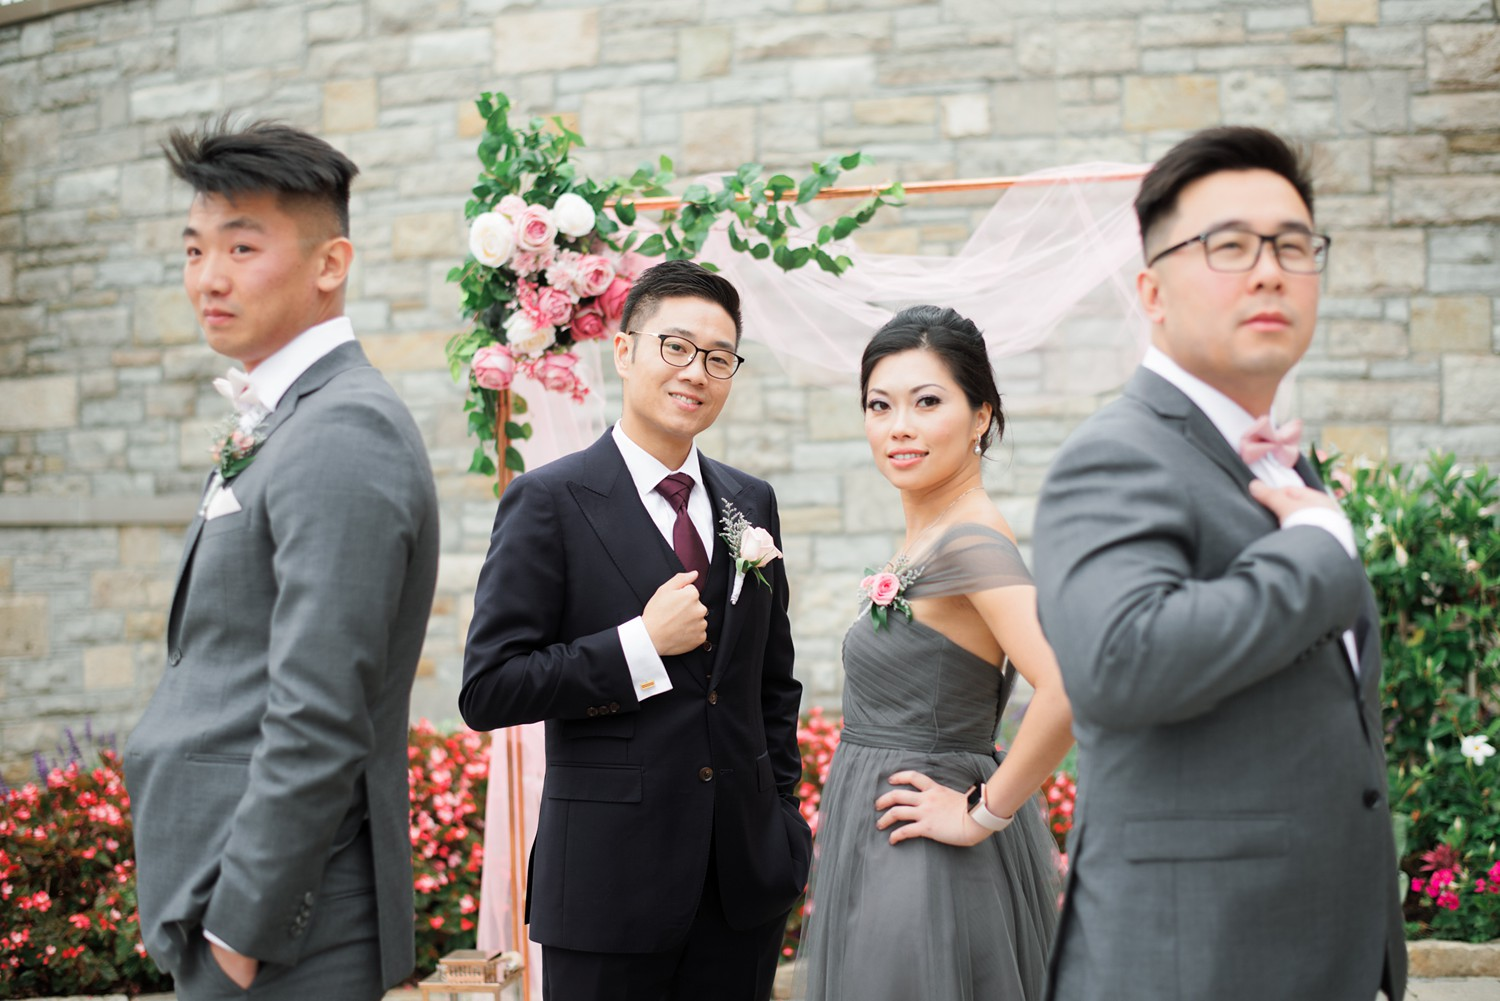 Groomsmen_Eagles_Nest_Golf_Club_Wedding_Photos_Toronto_Wedding_Photographer-Rhythm_Photography